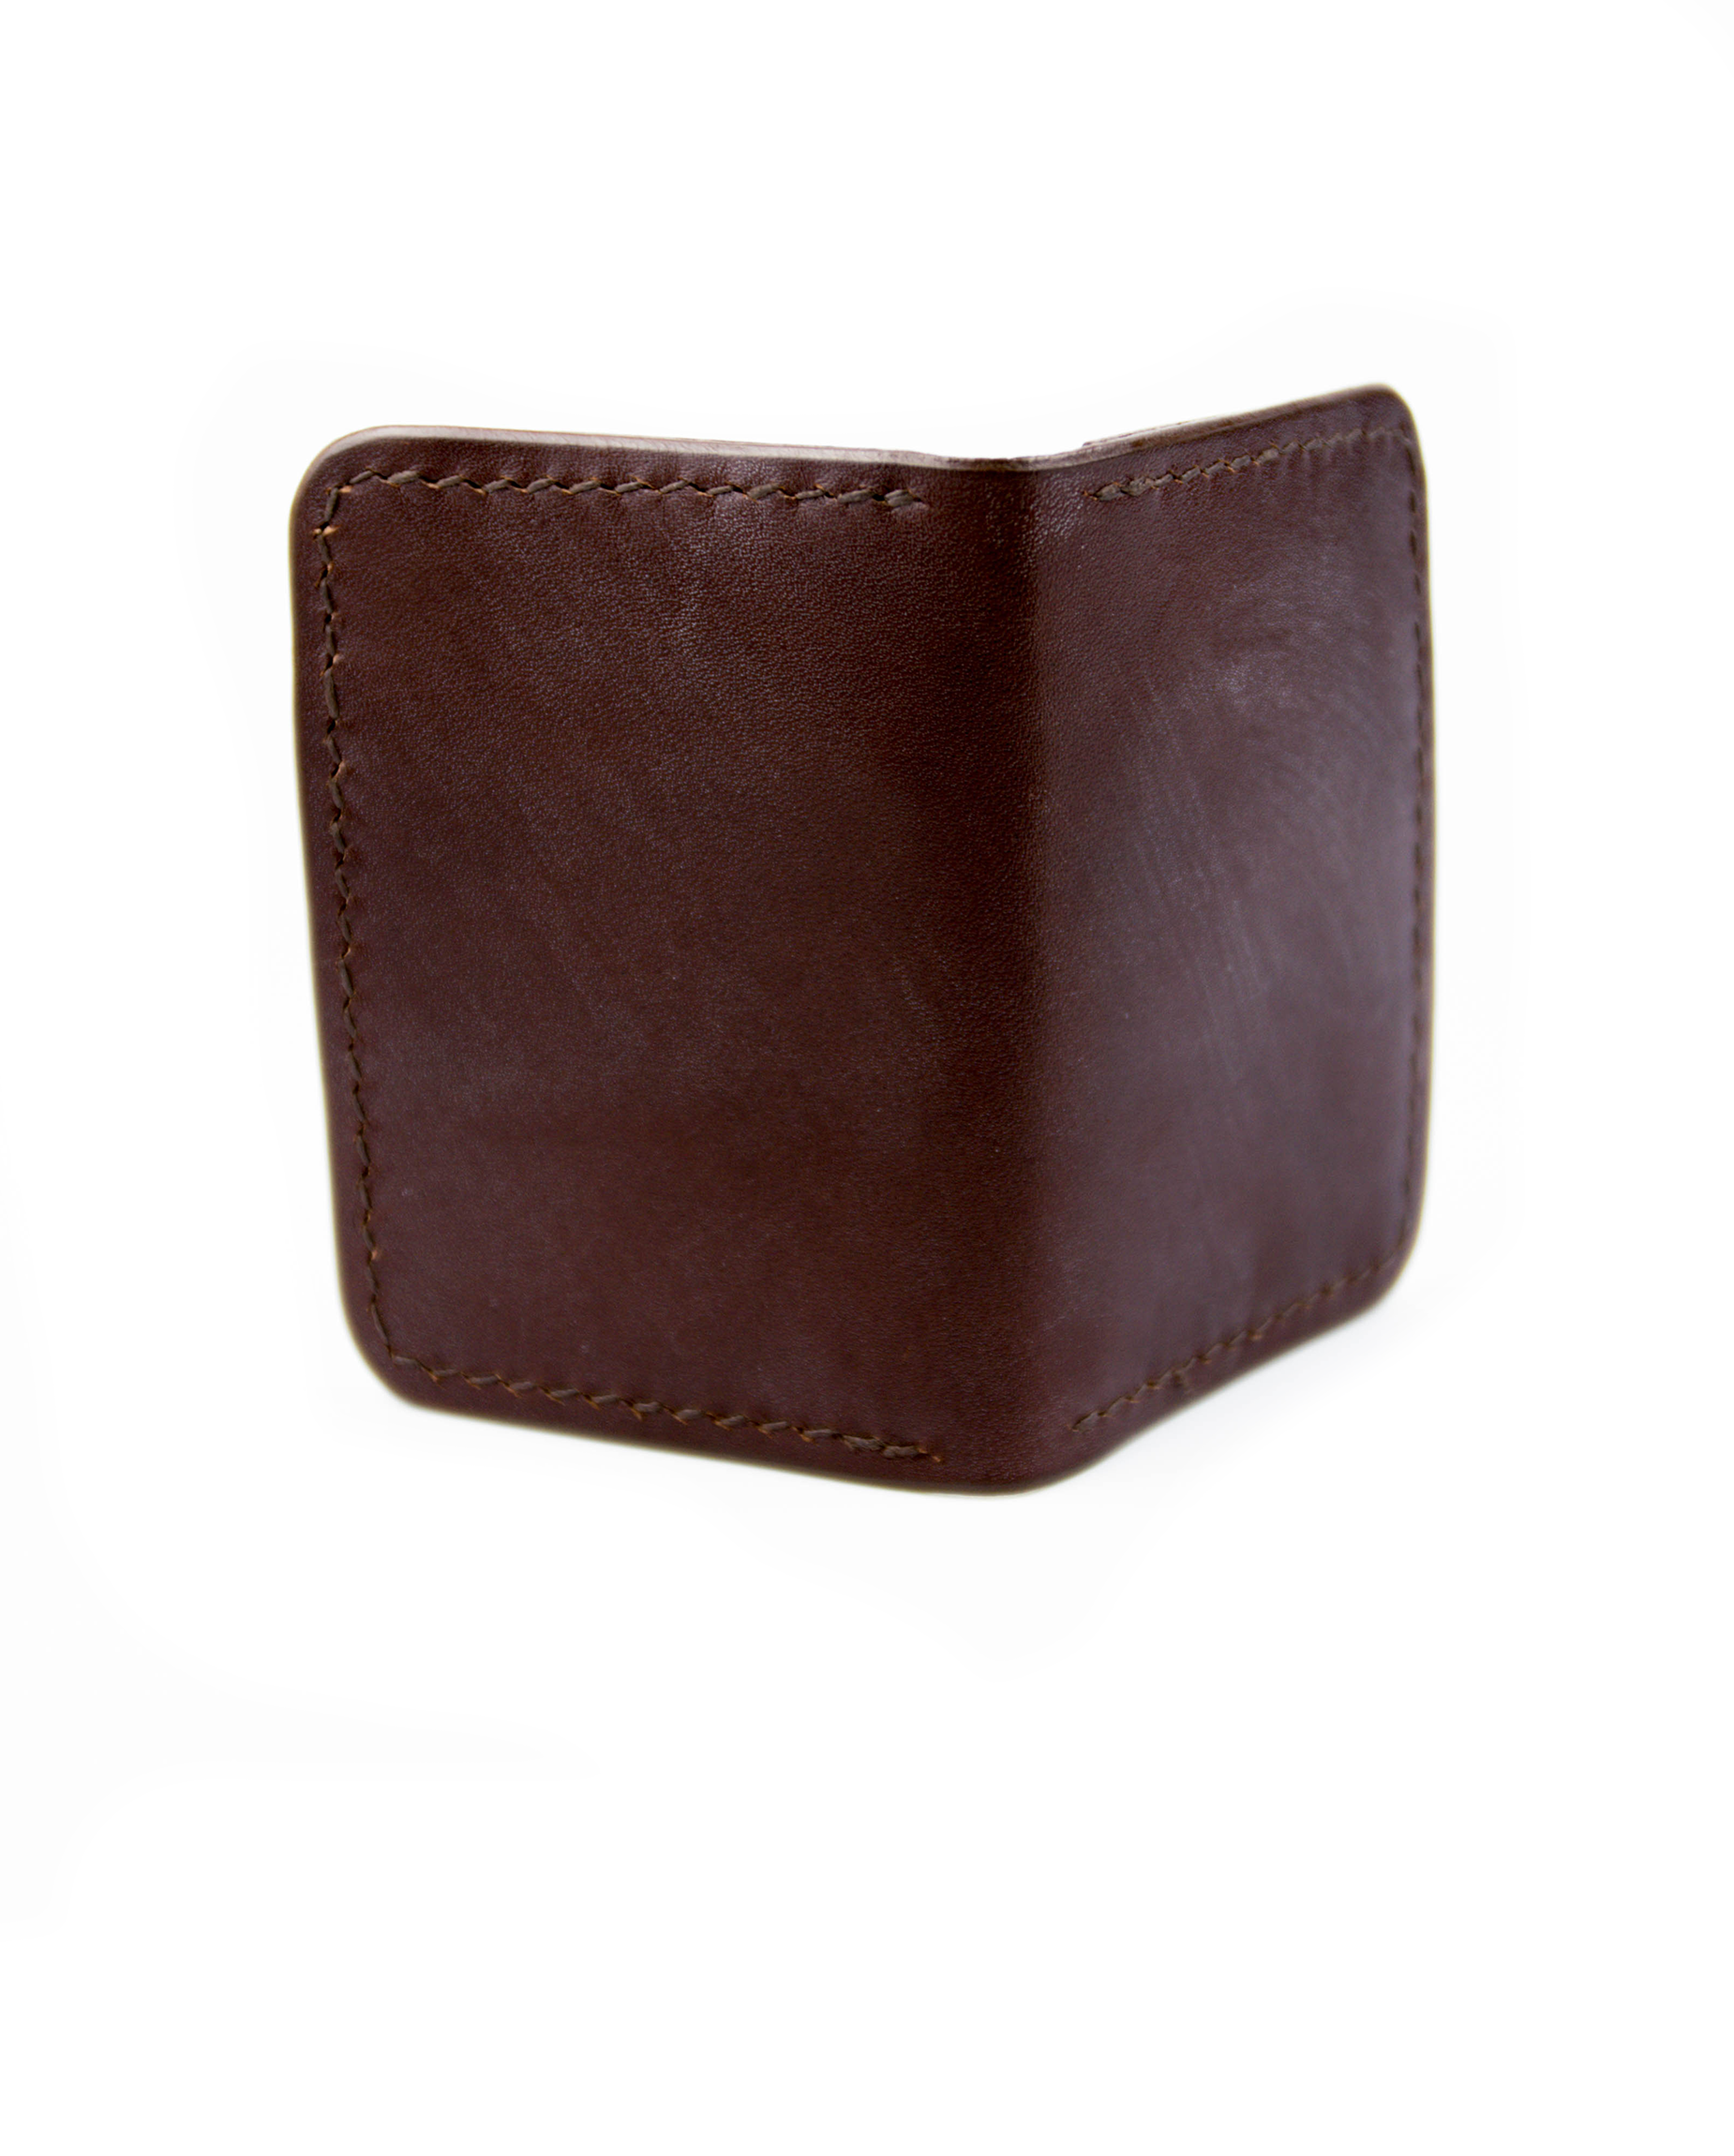 Vertical Wallet - Brown - Debonair